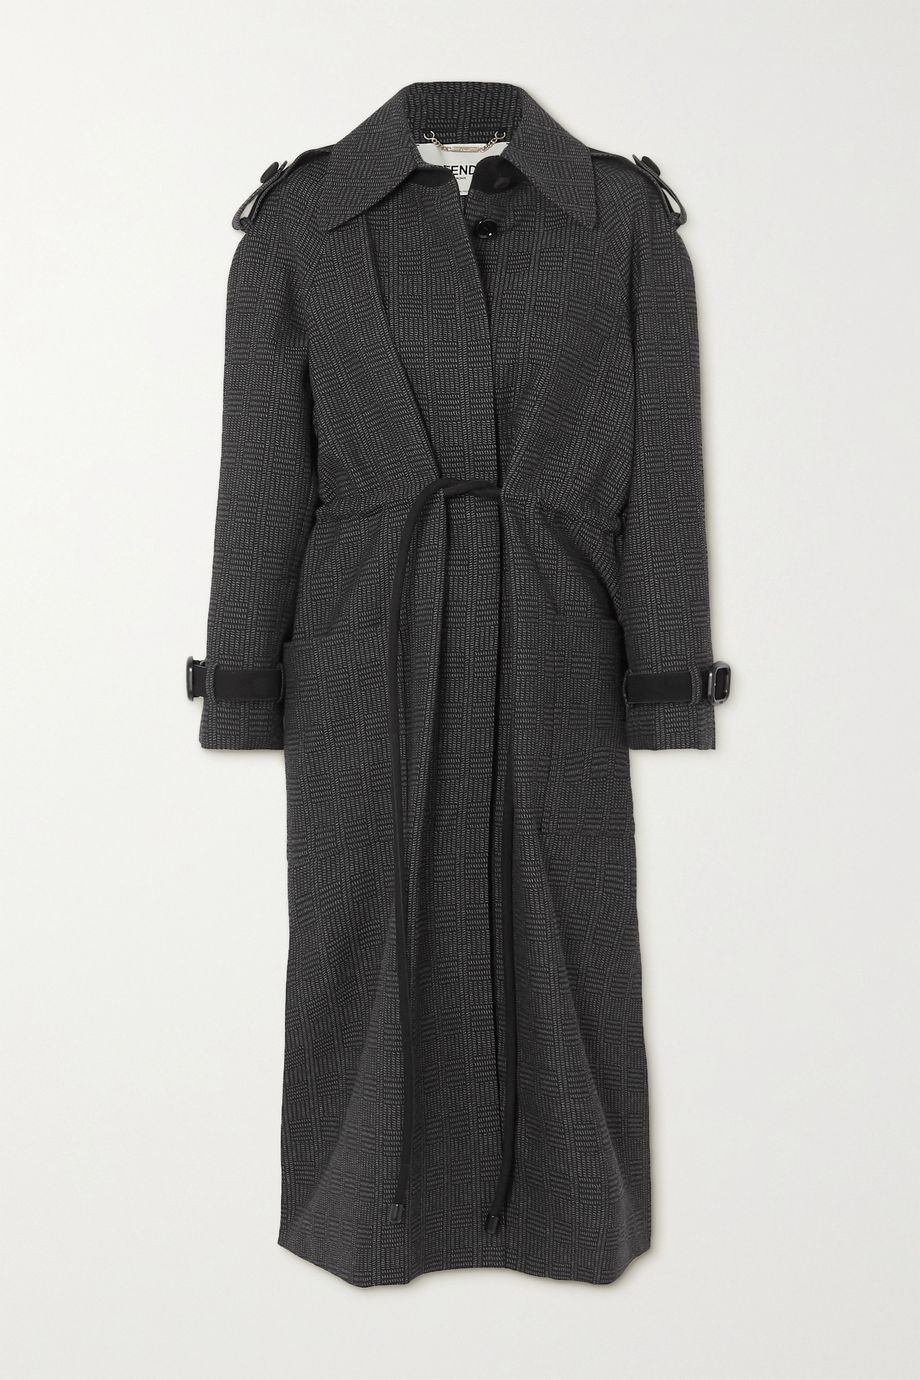 Fendi Belted suede-trimmed checked wool coat